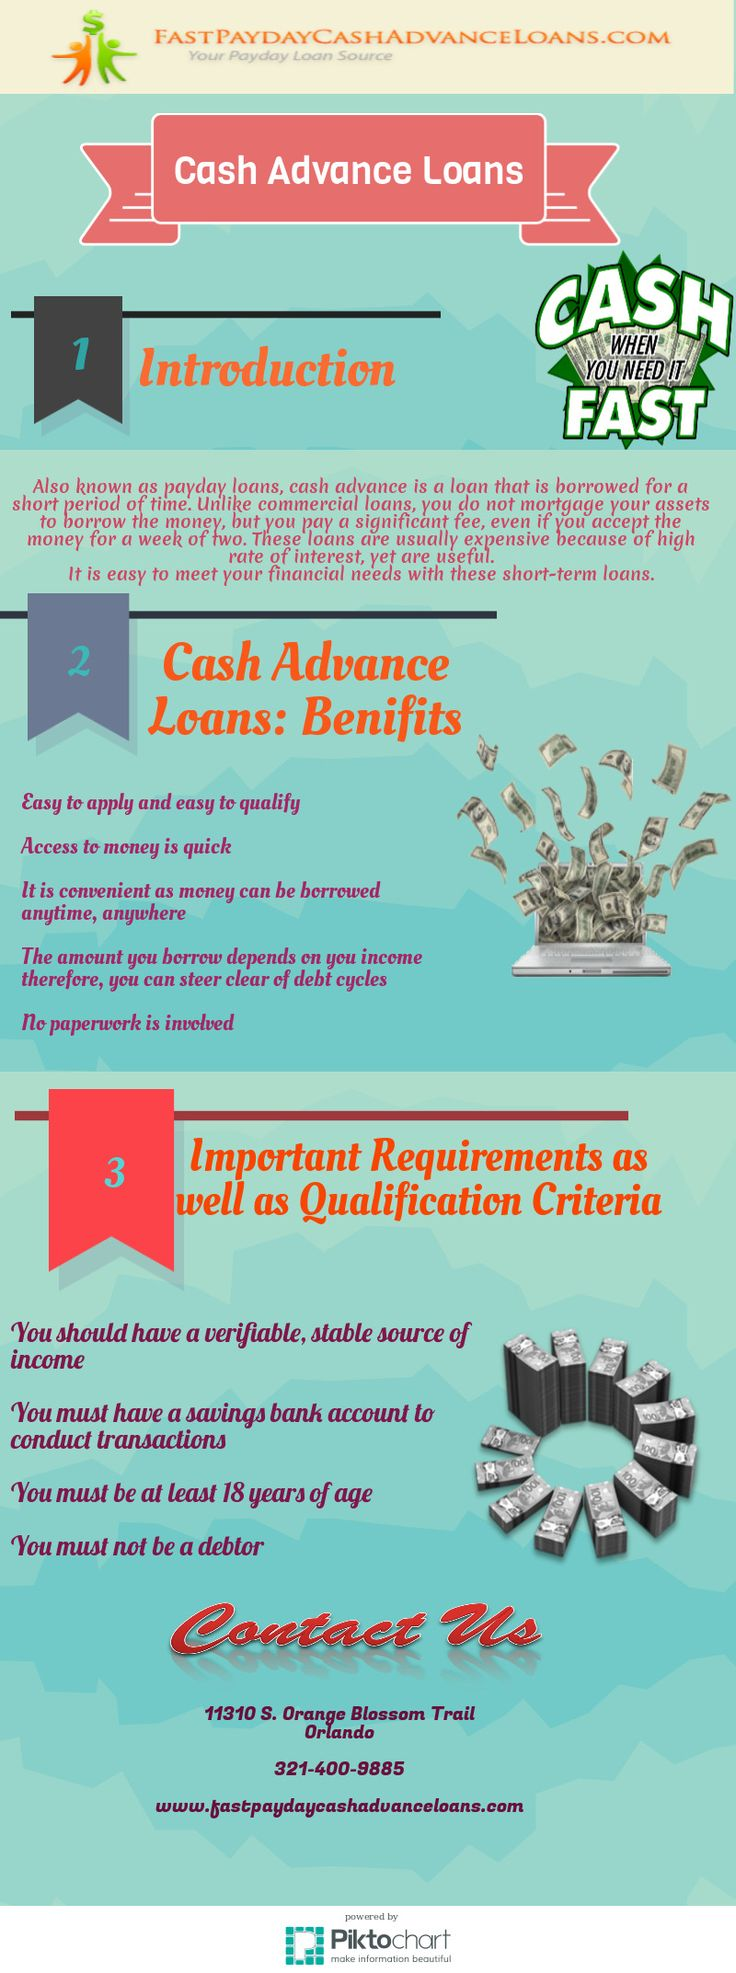 Also known as payday loans cash advance is a loan that is borrowed for a